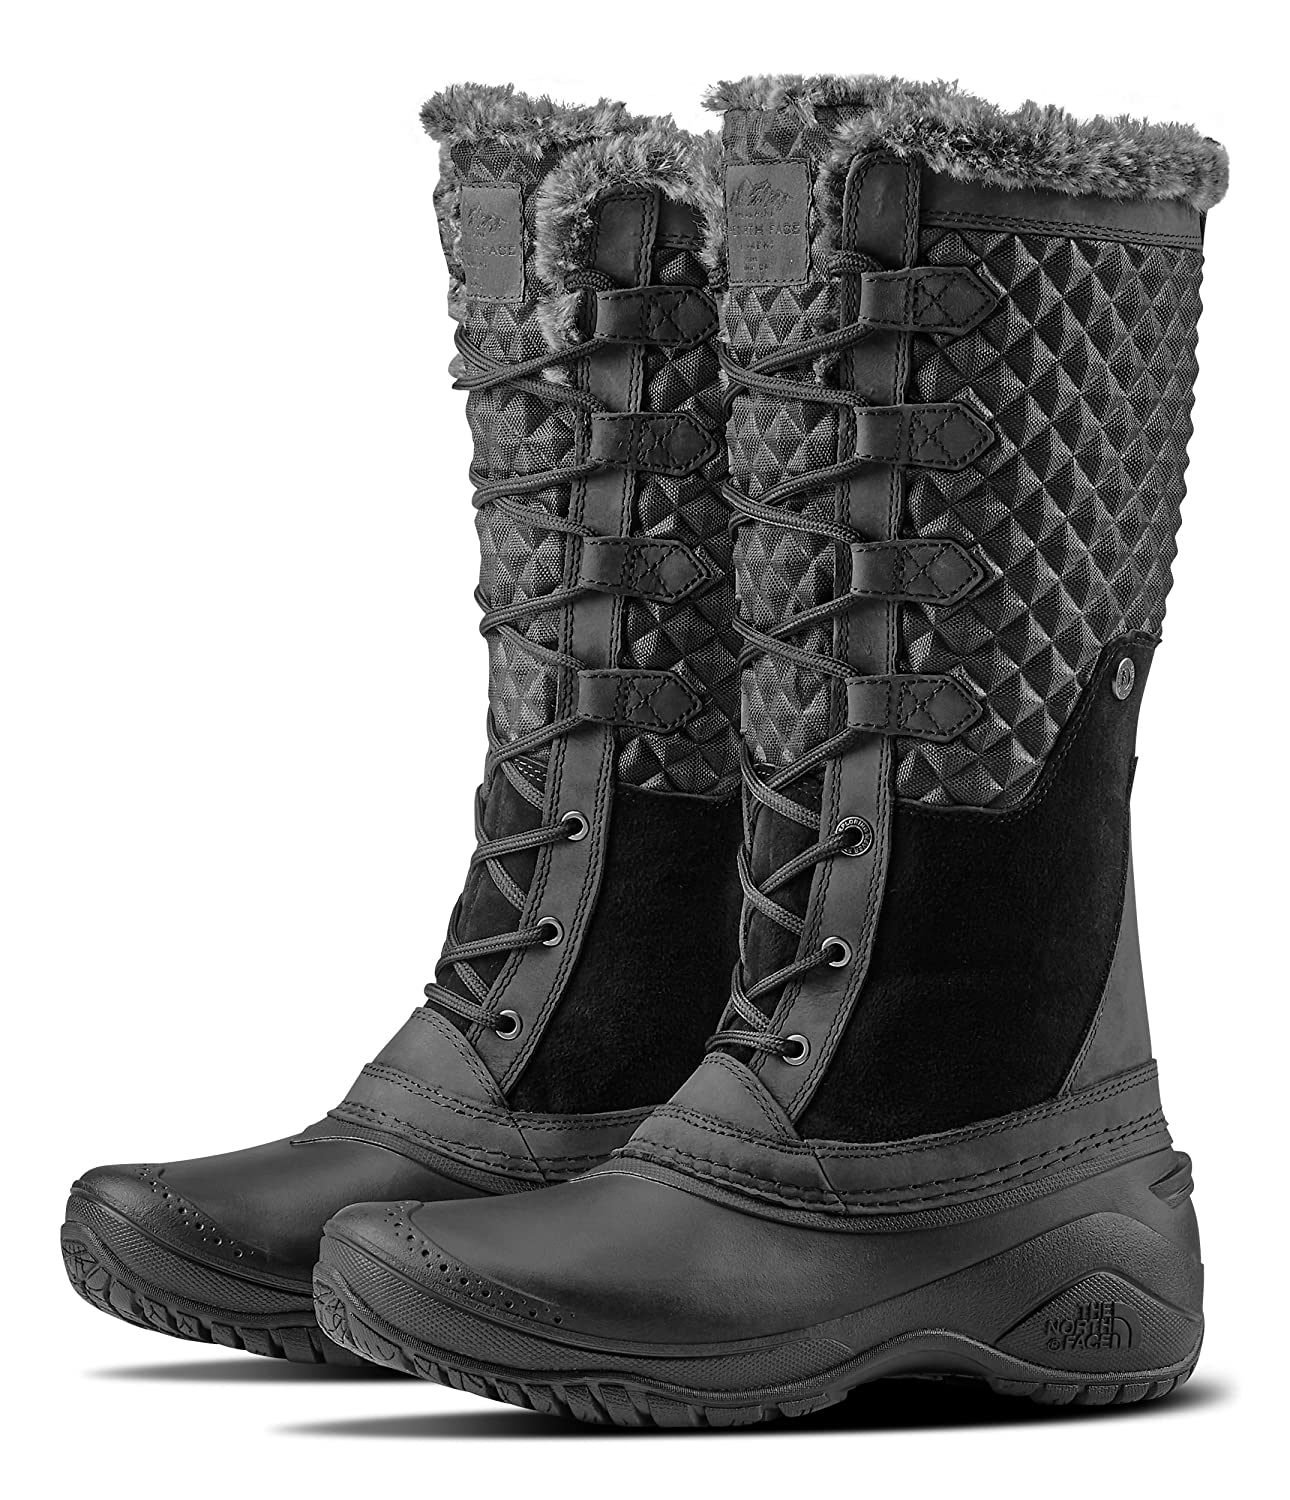 The III North Face Womens Shellista III The Tall B01NCNGKS9 10.5 B US|Tnf Black & Tnf Black 783050